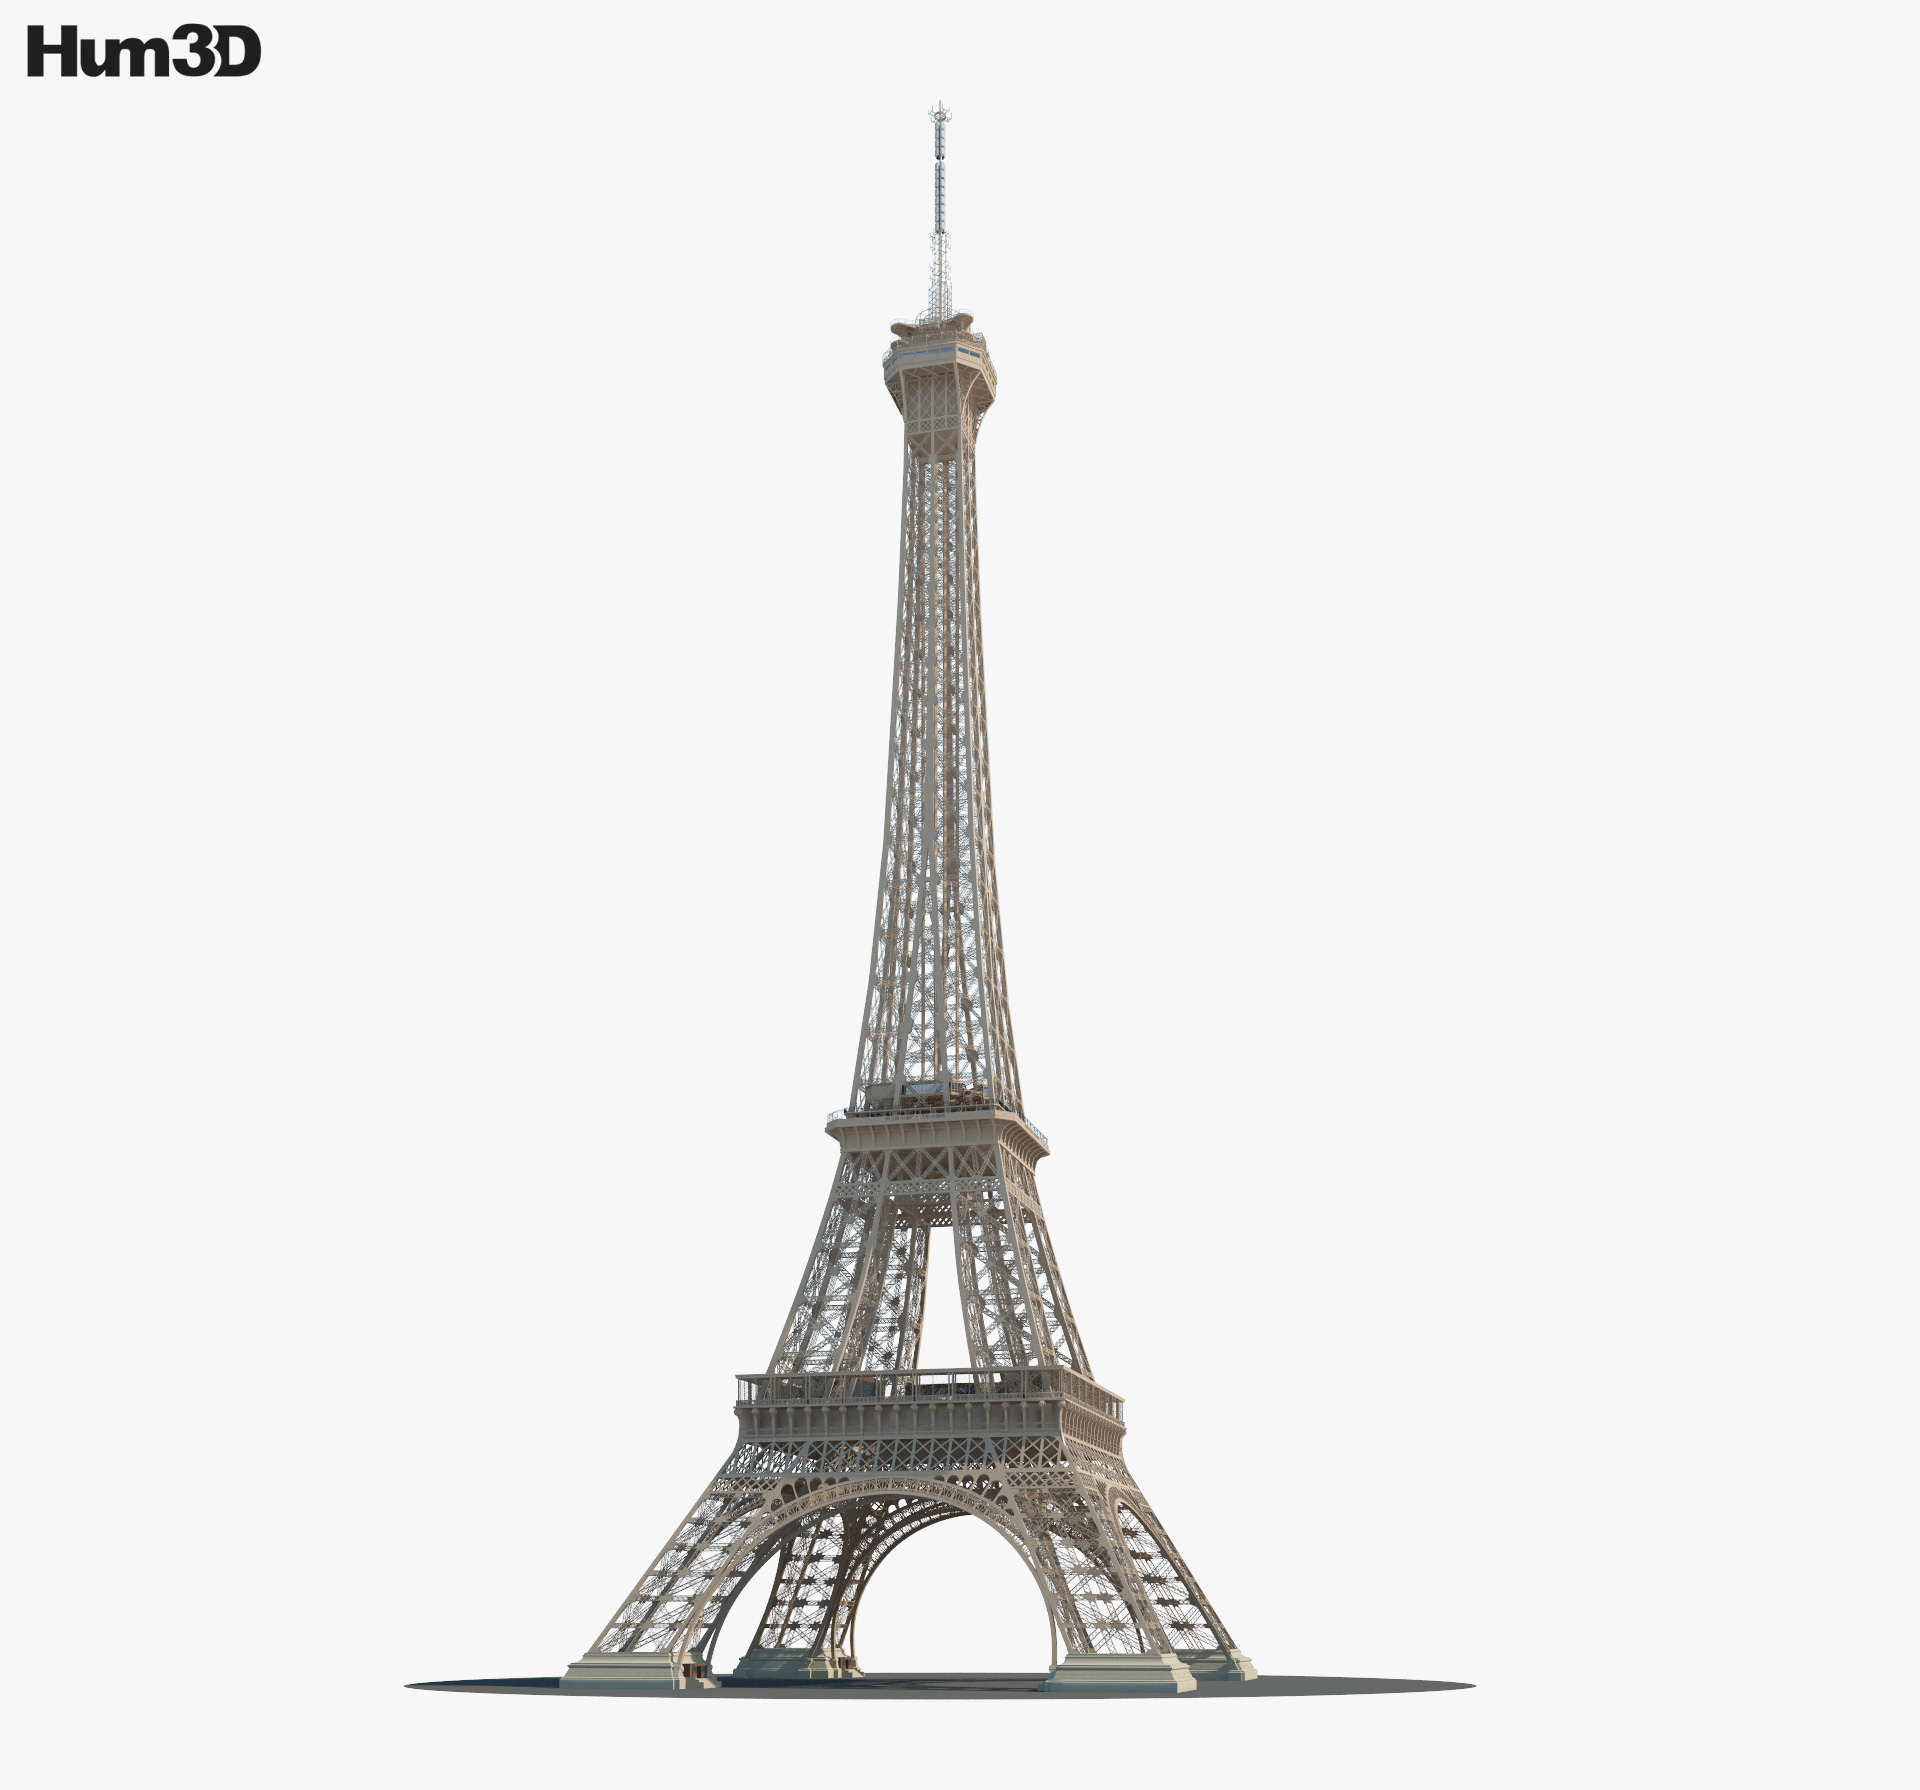 3D model of Eiffel Tower